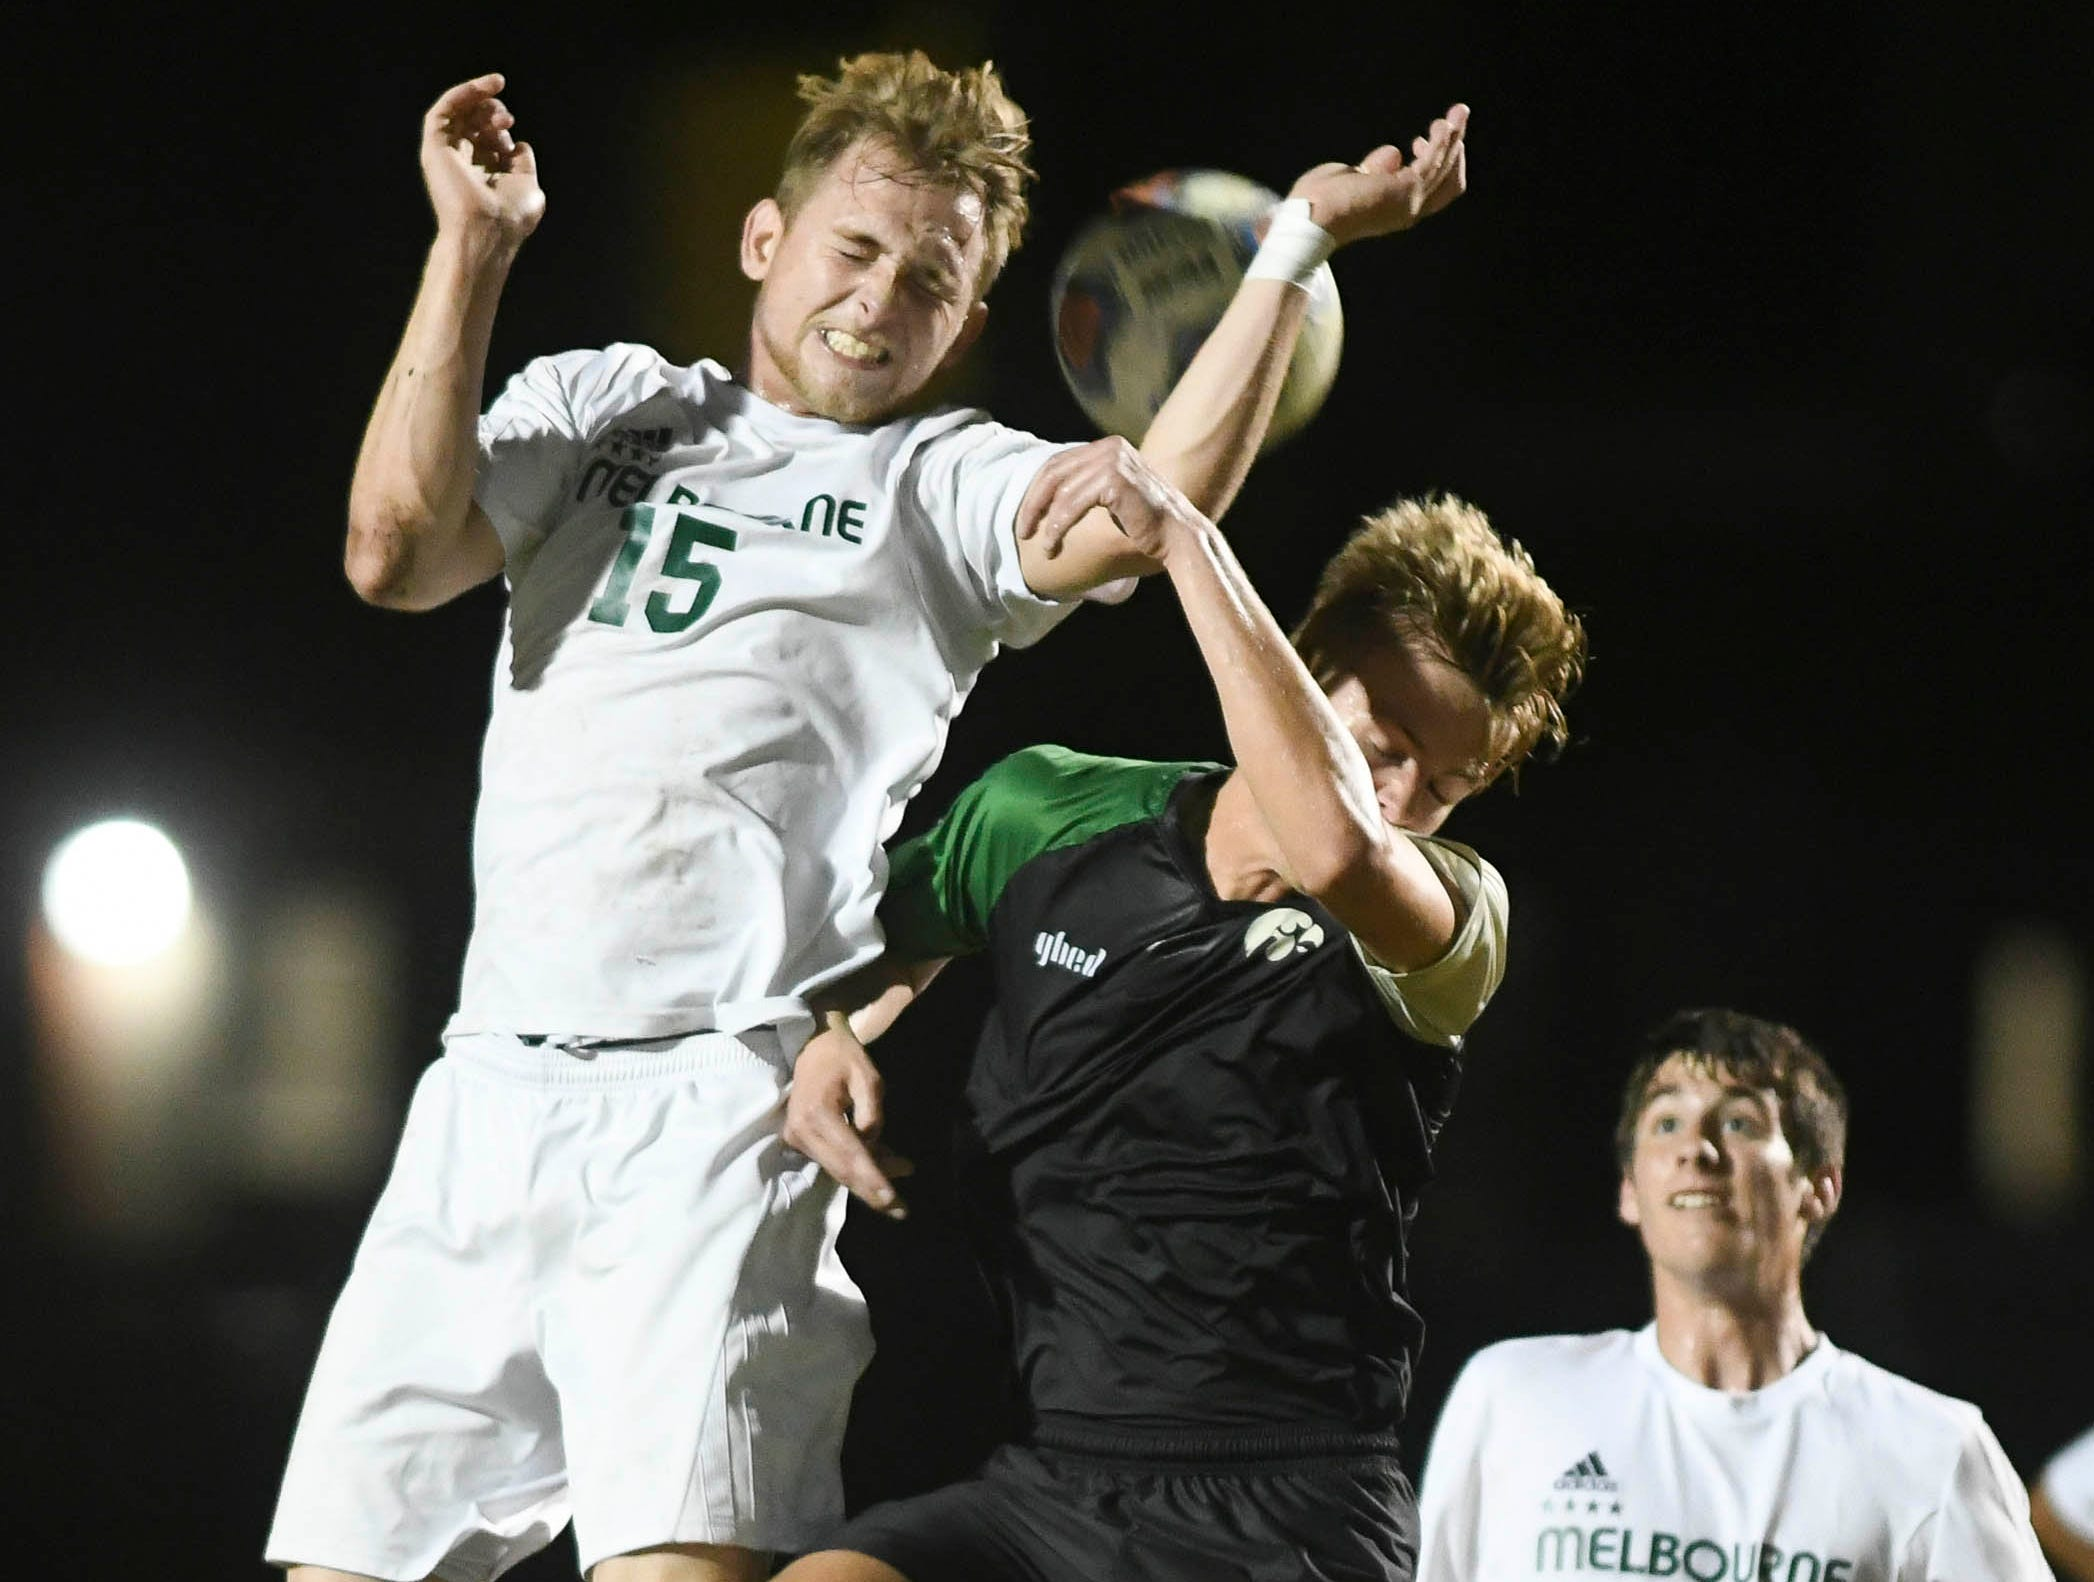 Melbourne's Logan Kraus (15) and Viera's Mads Jensen go up for a header during Friday's game at Viera High.